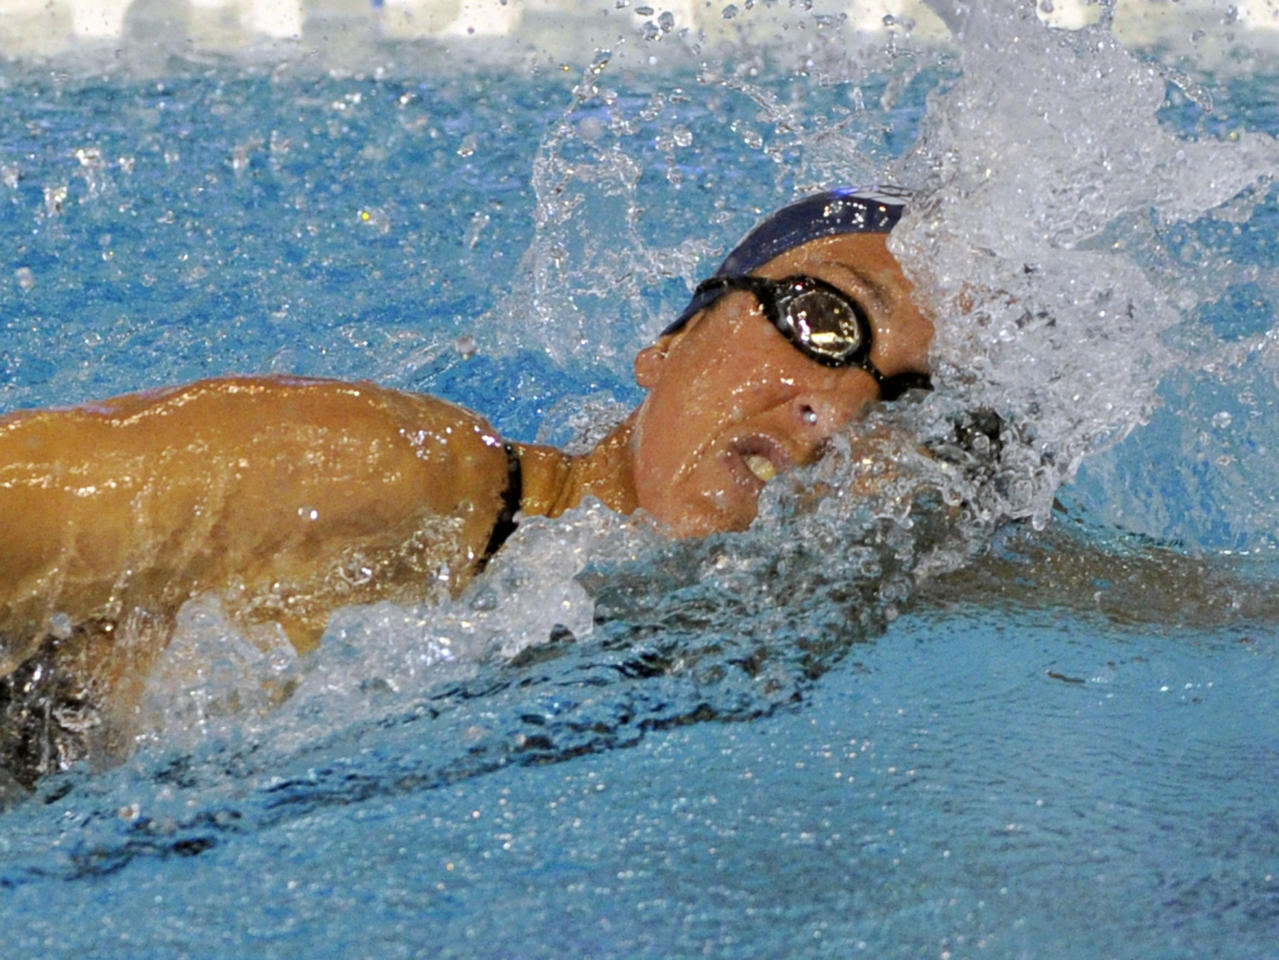 Janet Evans swims in the women's 800-meter freestyle preliminary race at the Austin Grand Prix swimming meet on Sunday, Jan. 15, 2012, in Austin, Texas. (AP Photo/Michael Thomas)